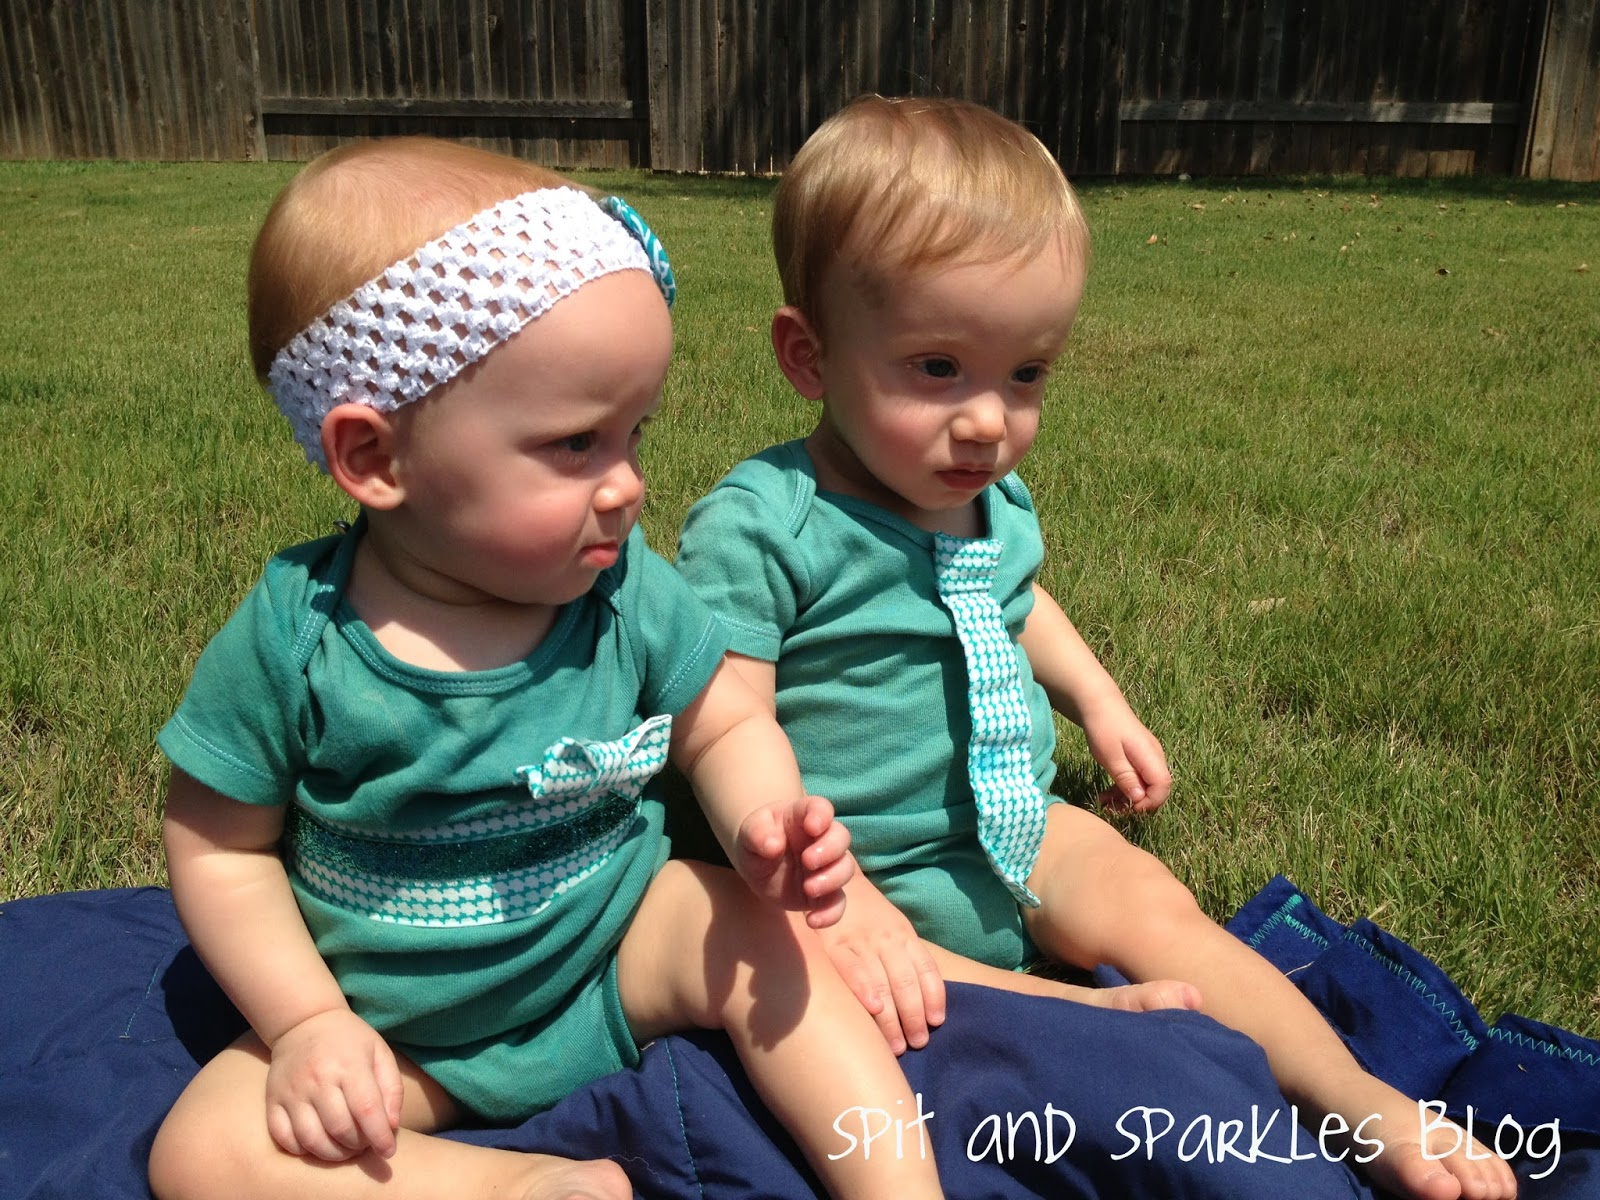 We're because early detection saved Mommy's life! #WearTealDay, ovarian cancer awareness, miraclebabies